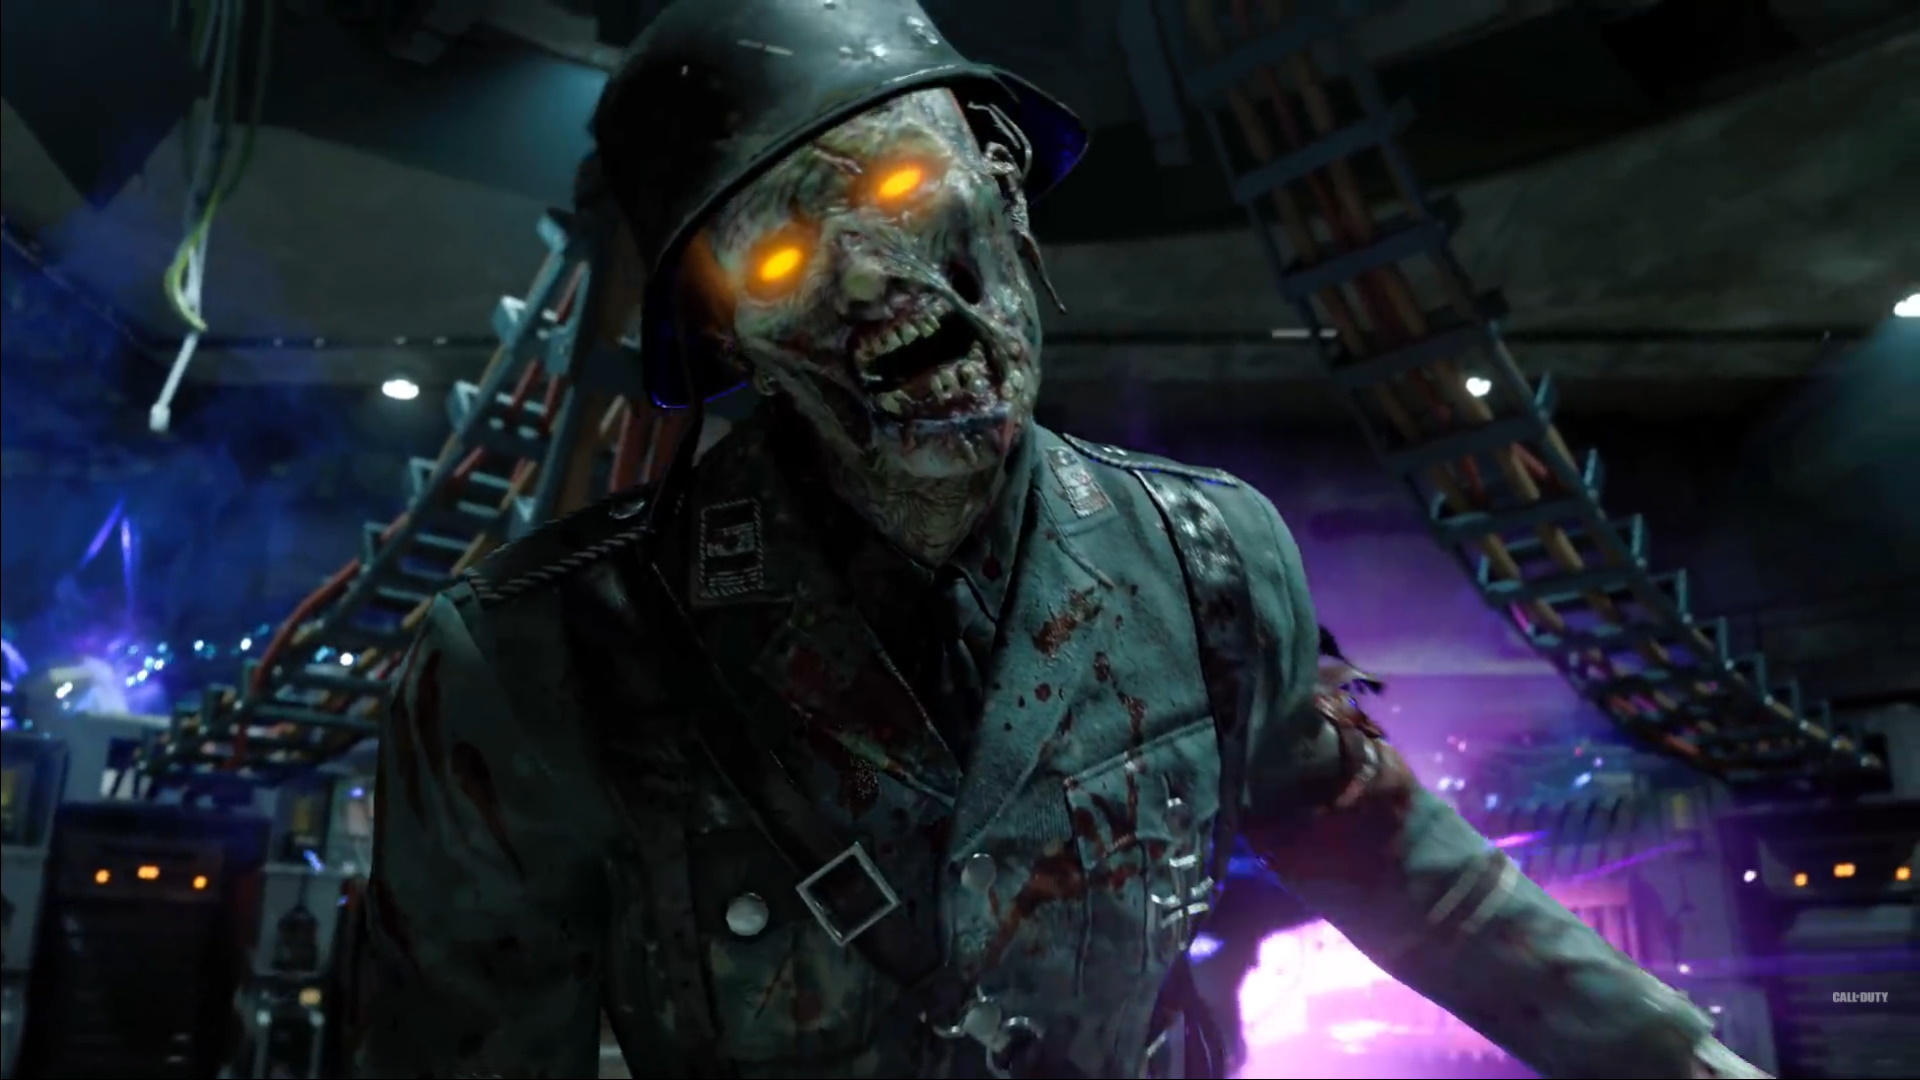 Call Of Duty Black Ops Cold War Zombies First Reveal Trailer Bunnygaming Com